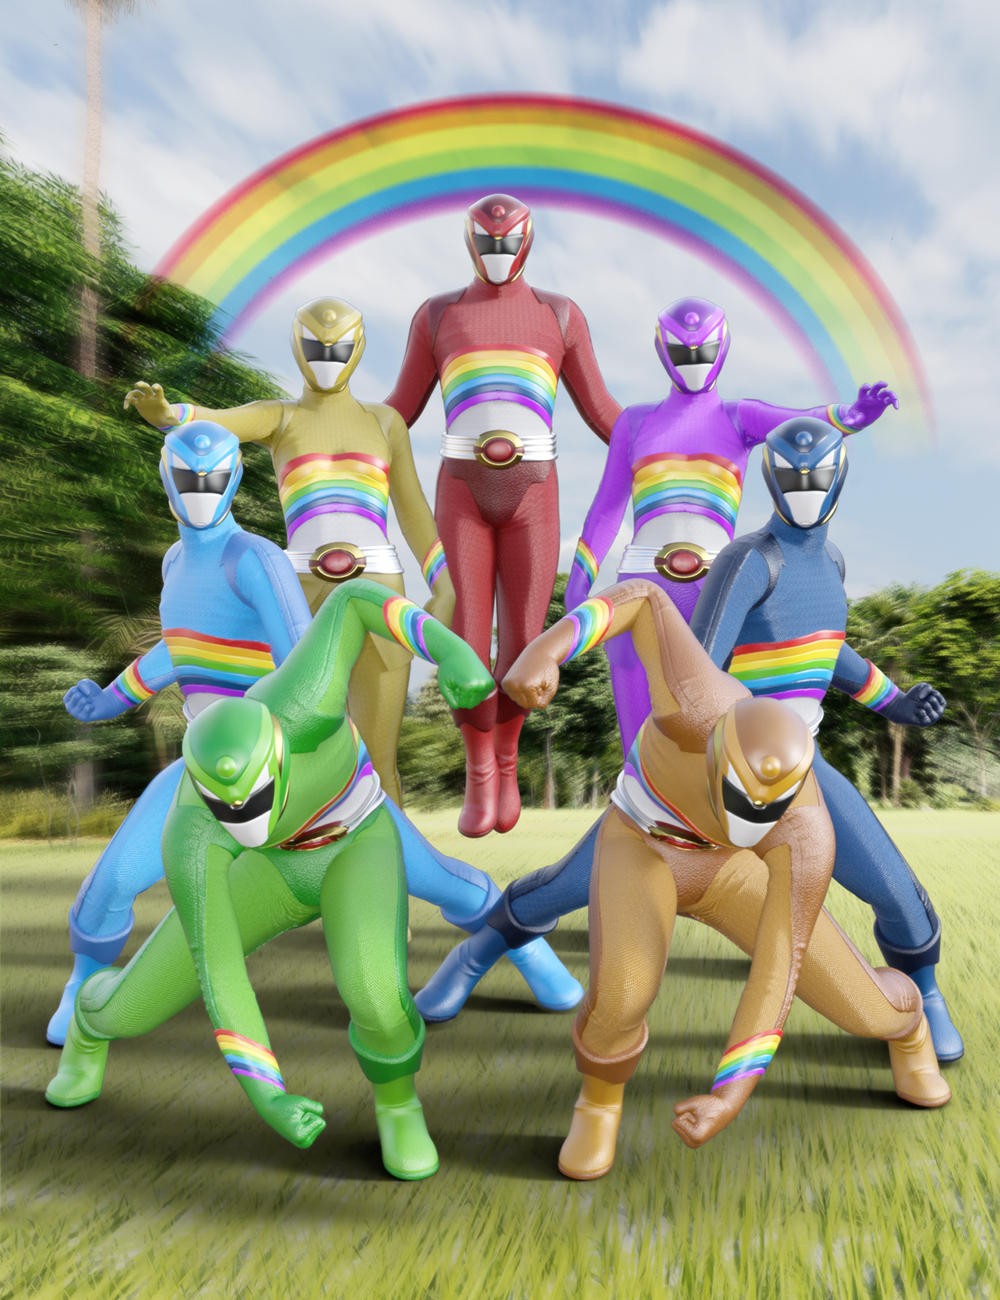 Rainbow Ranger Outfit for Genesis 8 and 8.1 by: Jerry Jang, 3D Models by Daz 3D